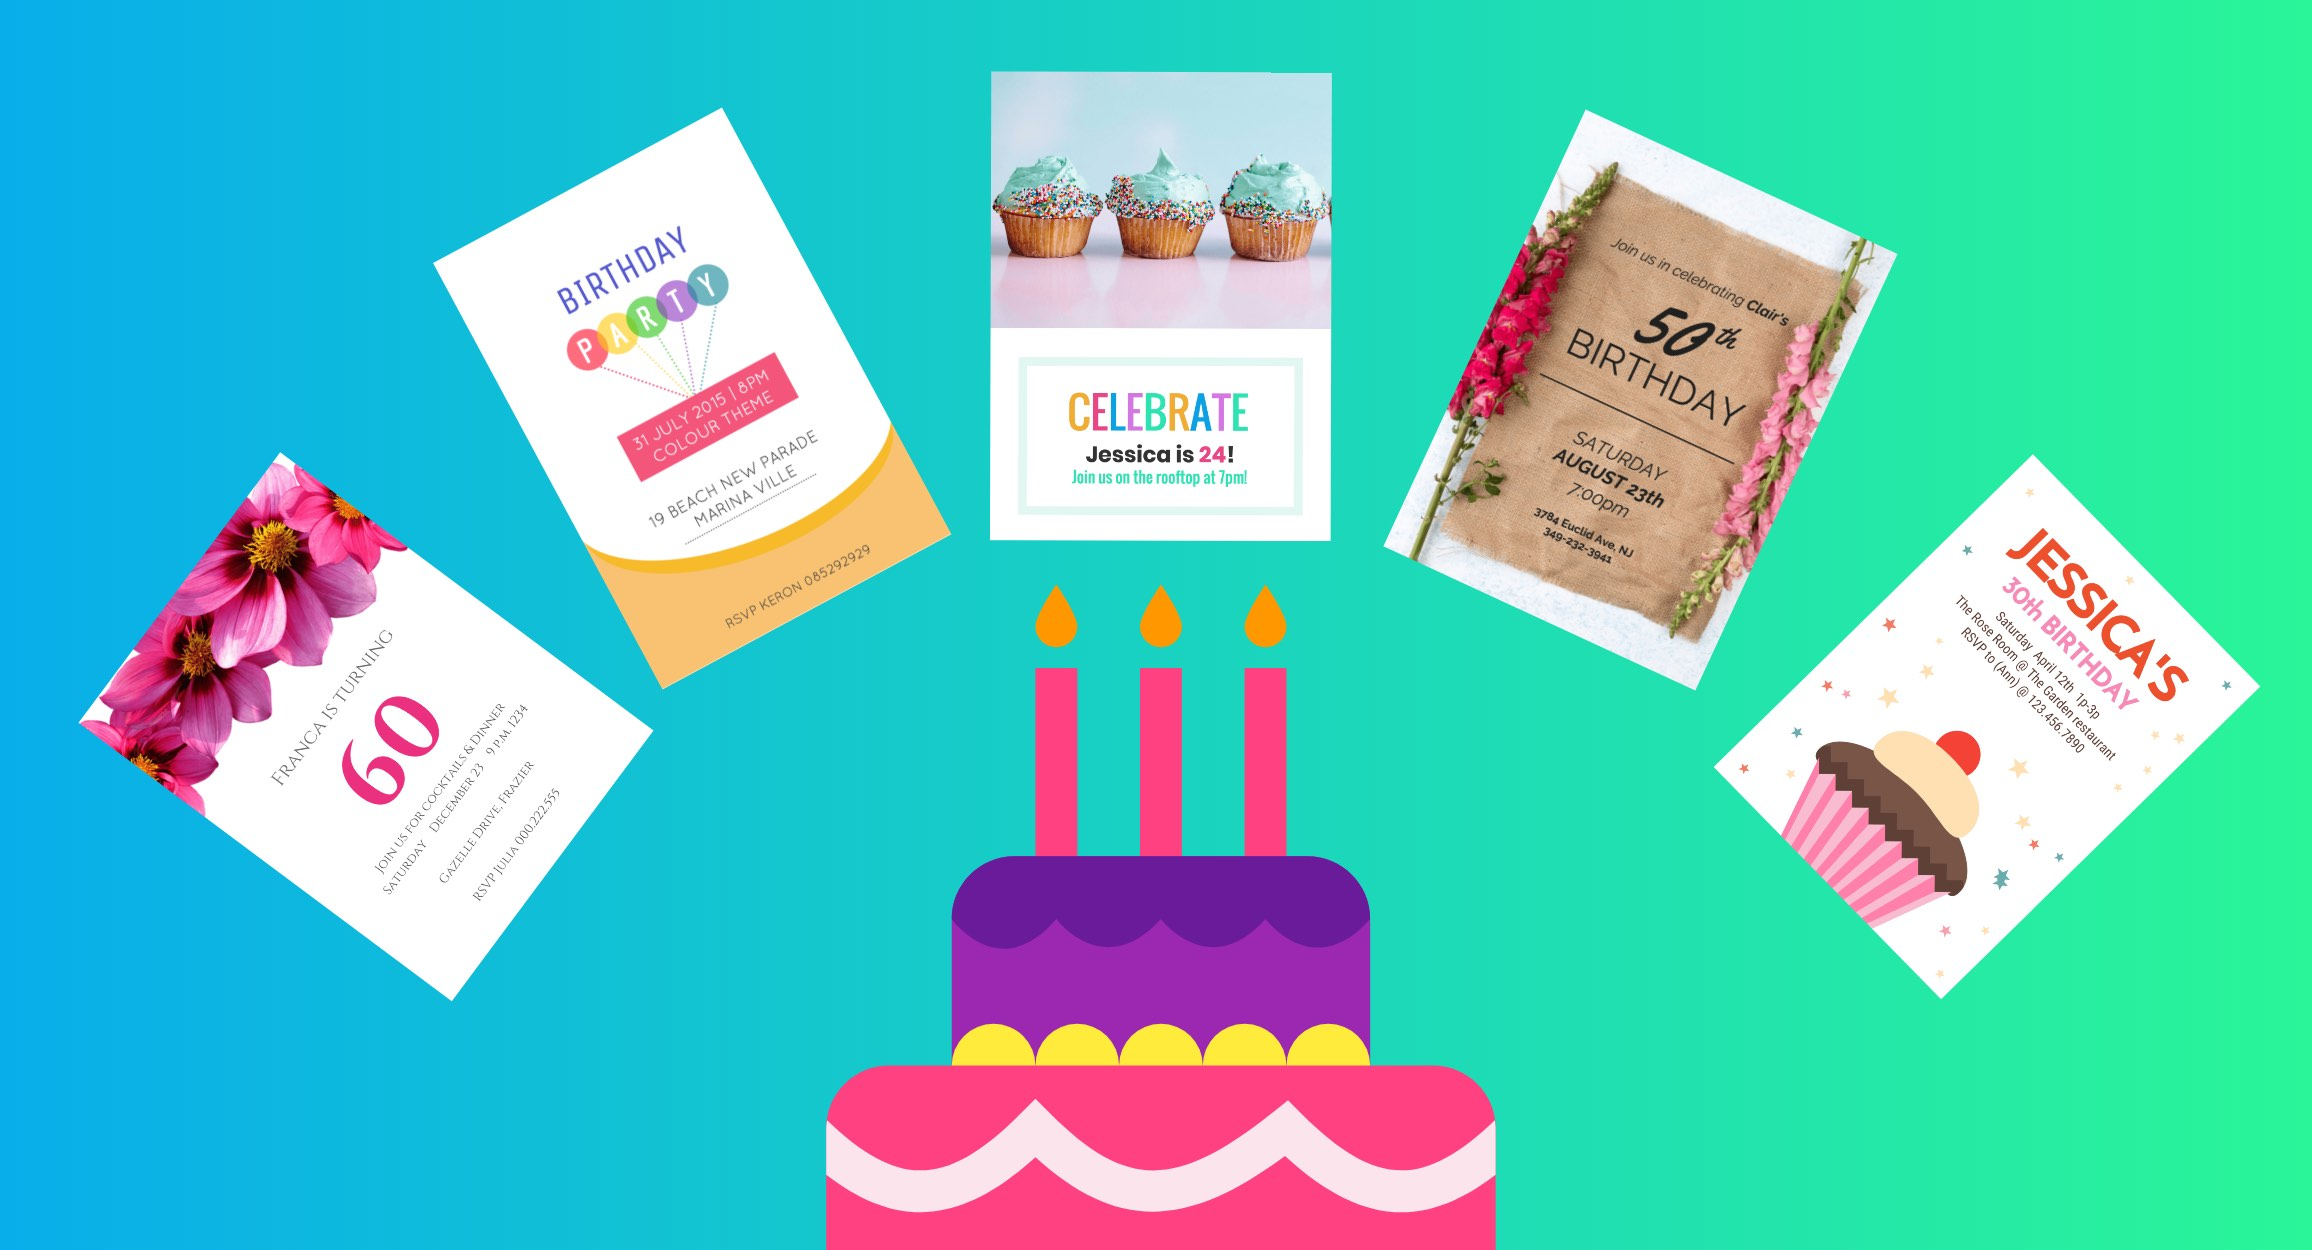 August Birthday Borders Png - 10 Creative Birthday Invitation Card Design Tips [+Templates ...